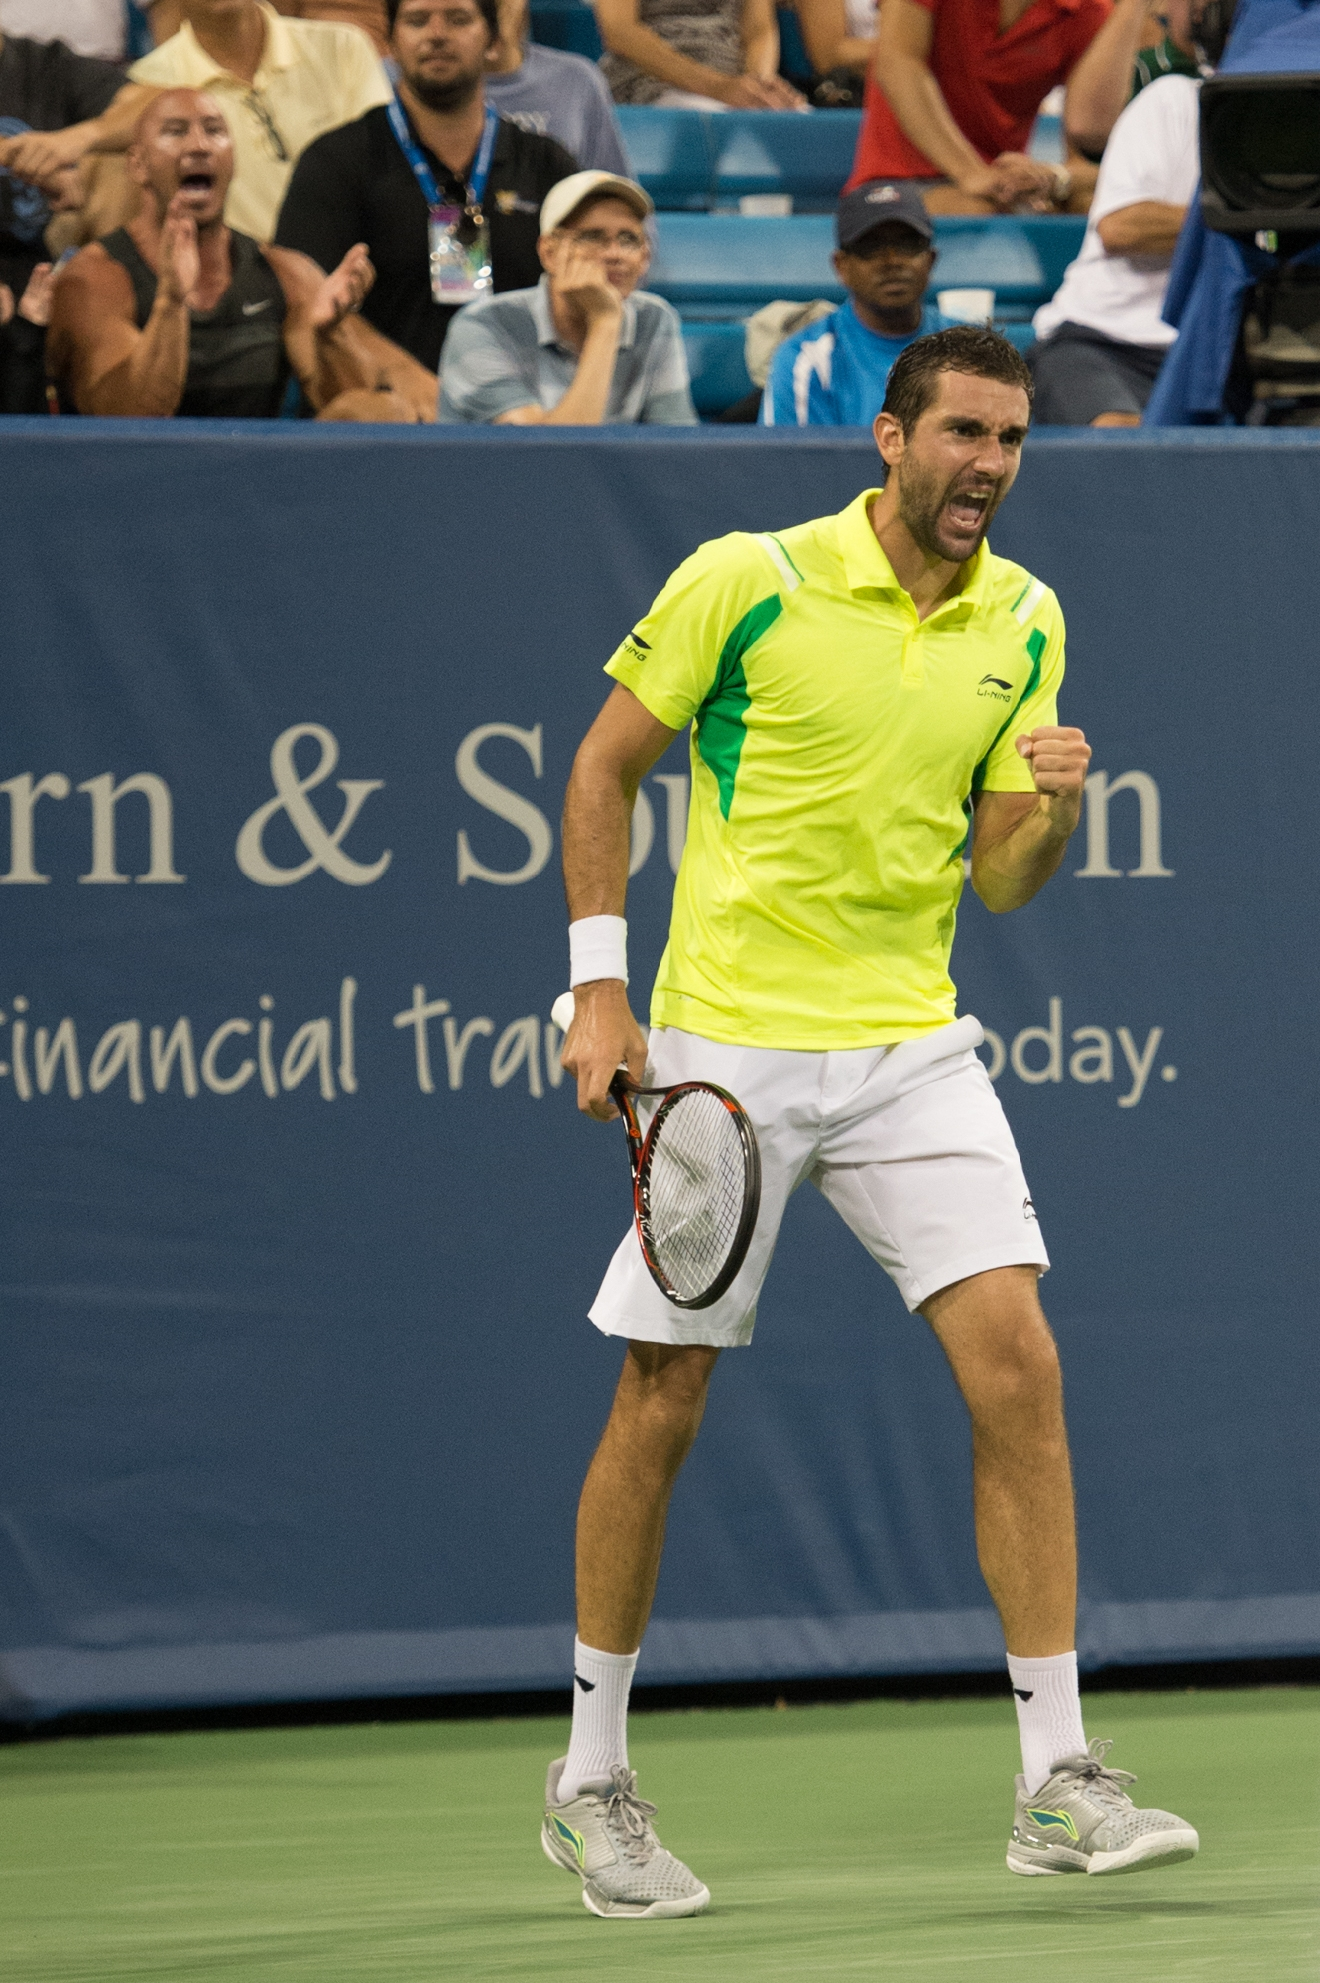 Marin Cilic / Image: Chris Jenco